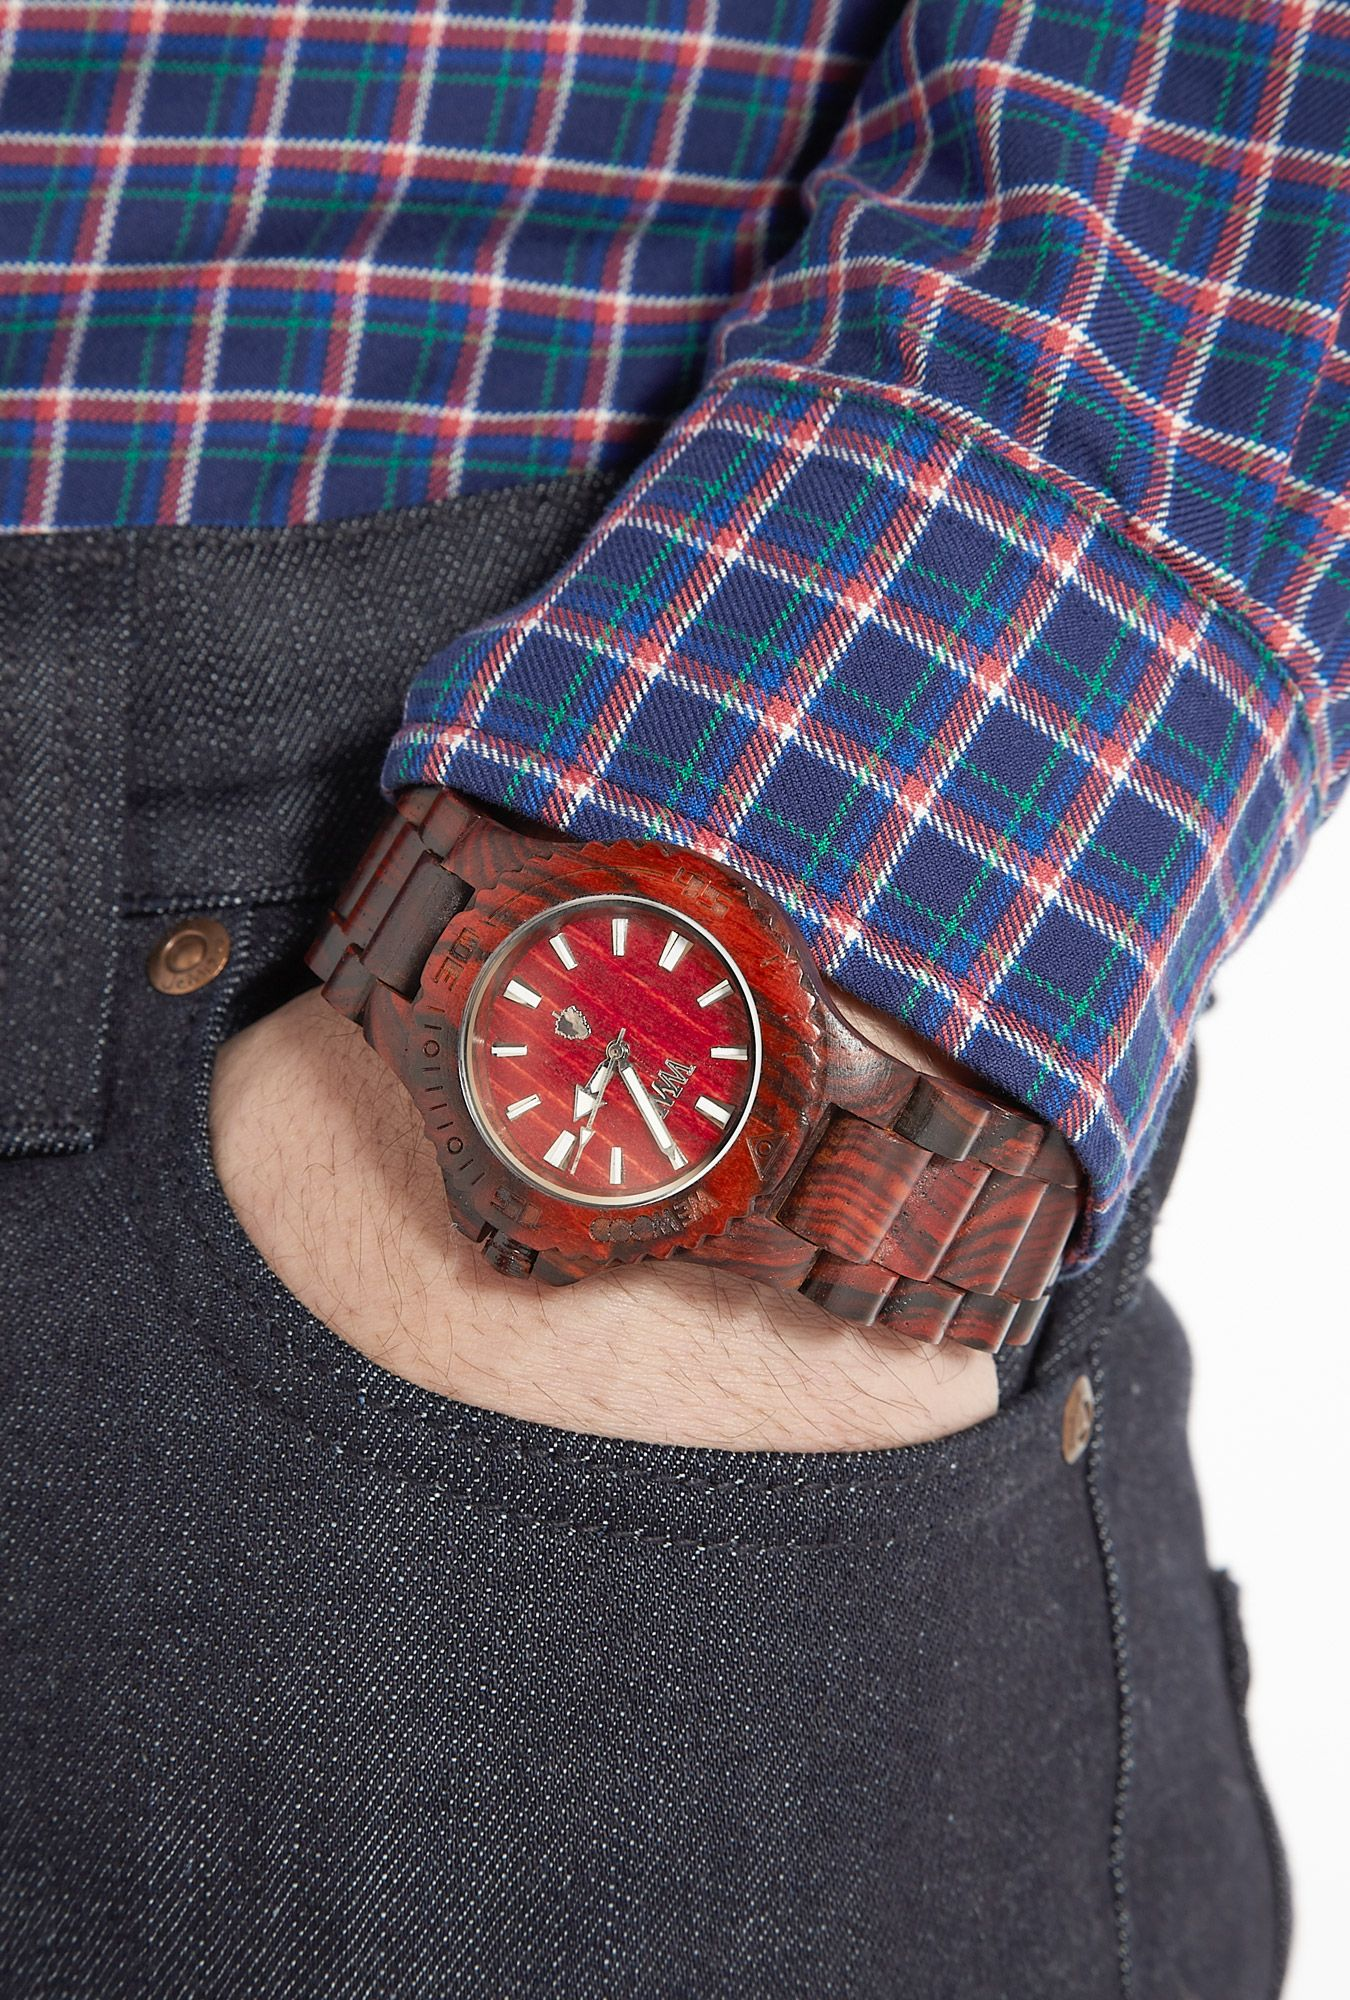 fashion watches quilted mens jeans professing sweater gloves professor blog boots jacket shirt style red leather coat redwing watch wool casual wing plaid